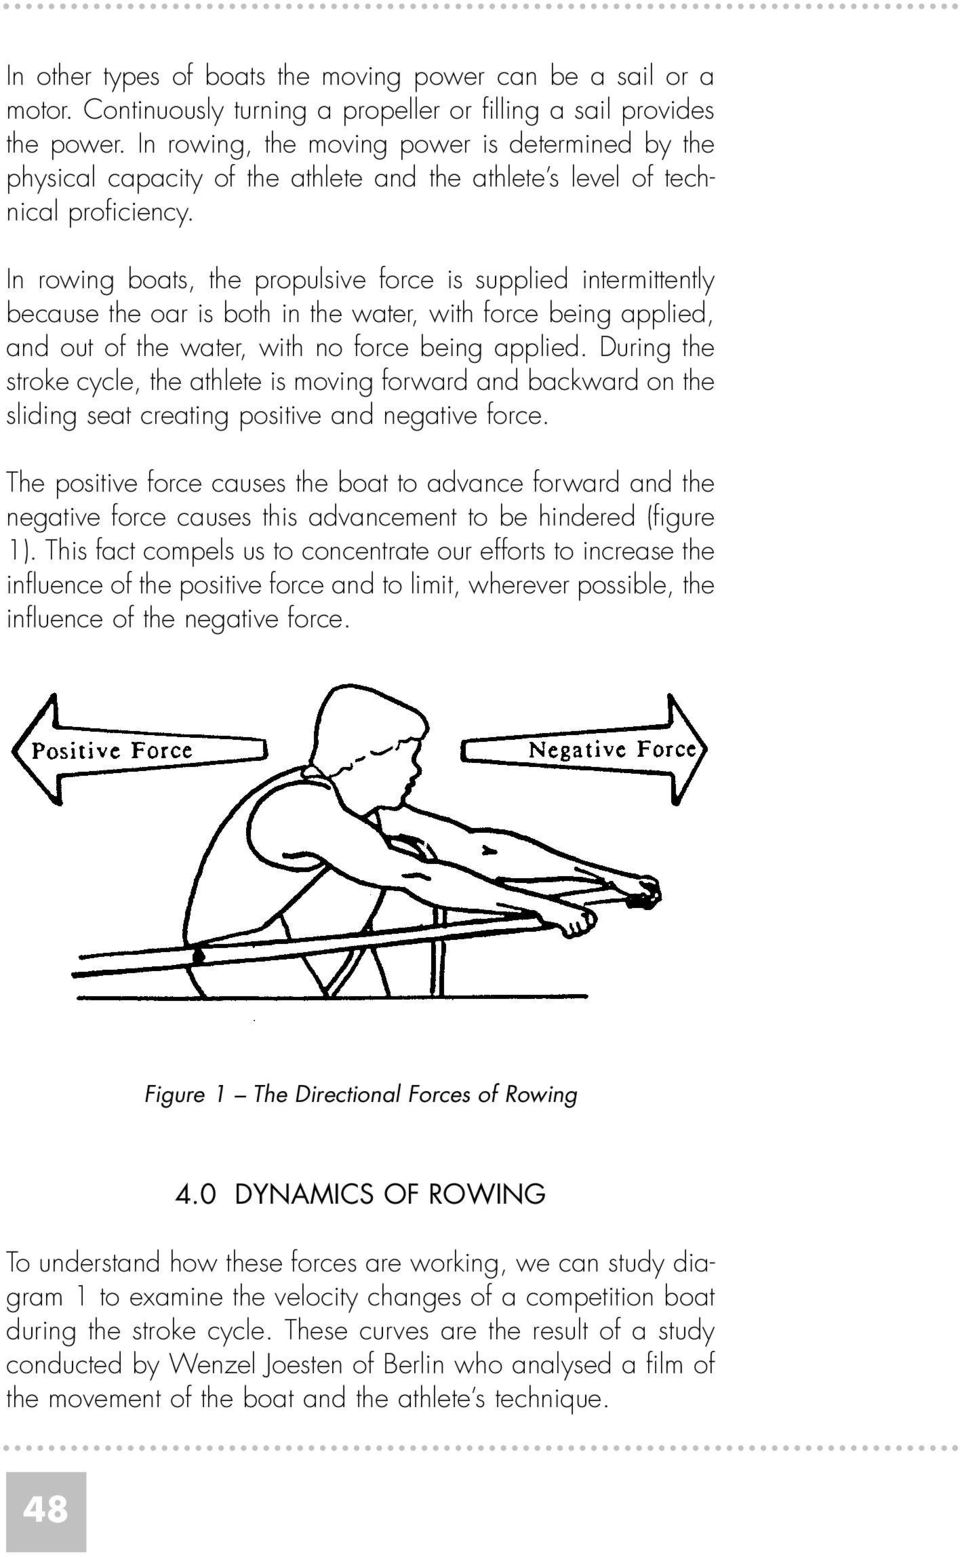 In rowing boats, the propulsive force is supplied intermittently because the oar is both in the water, with force being applied, and out of the water, with no force being applied.